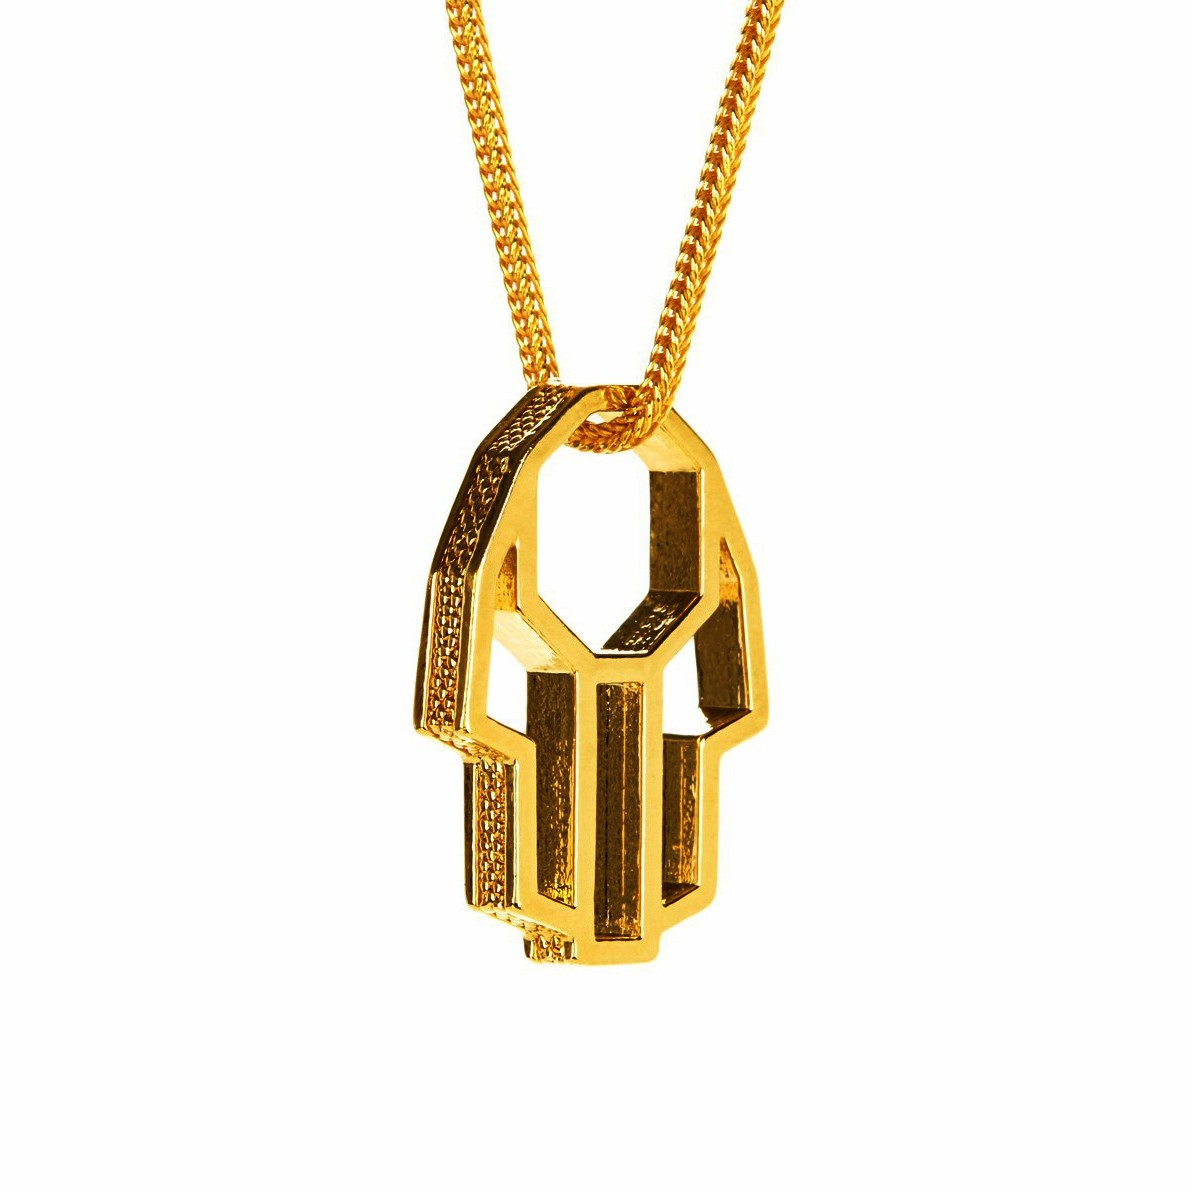 Perepaix Mens Necklace Hamsa Pendant Amulet Gold Plated, $249 @amazon.com